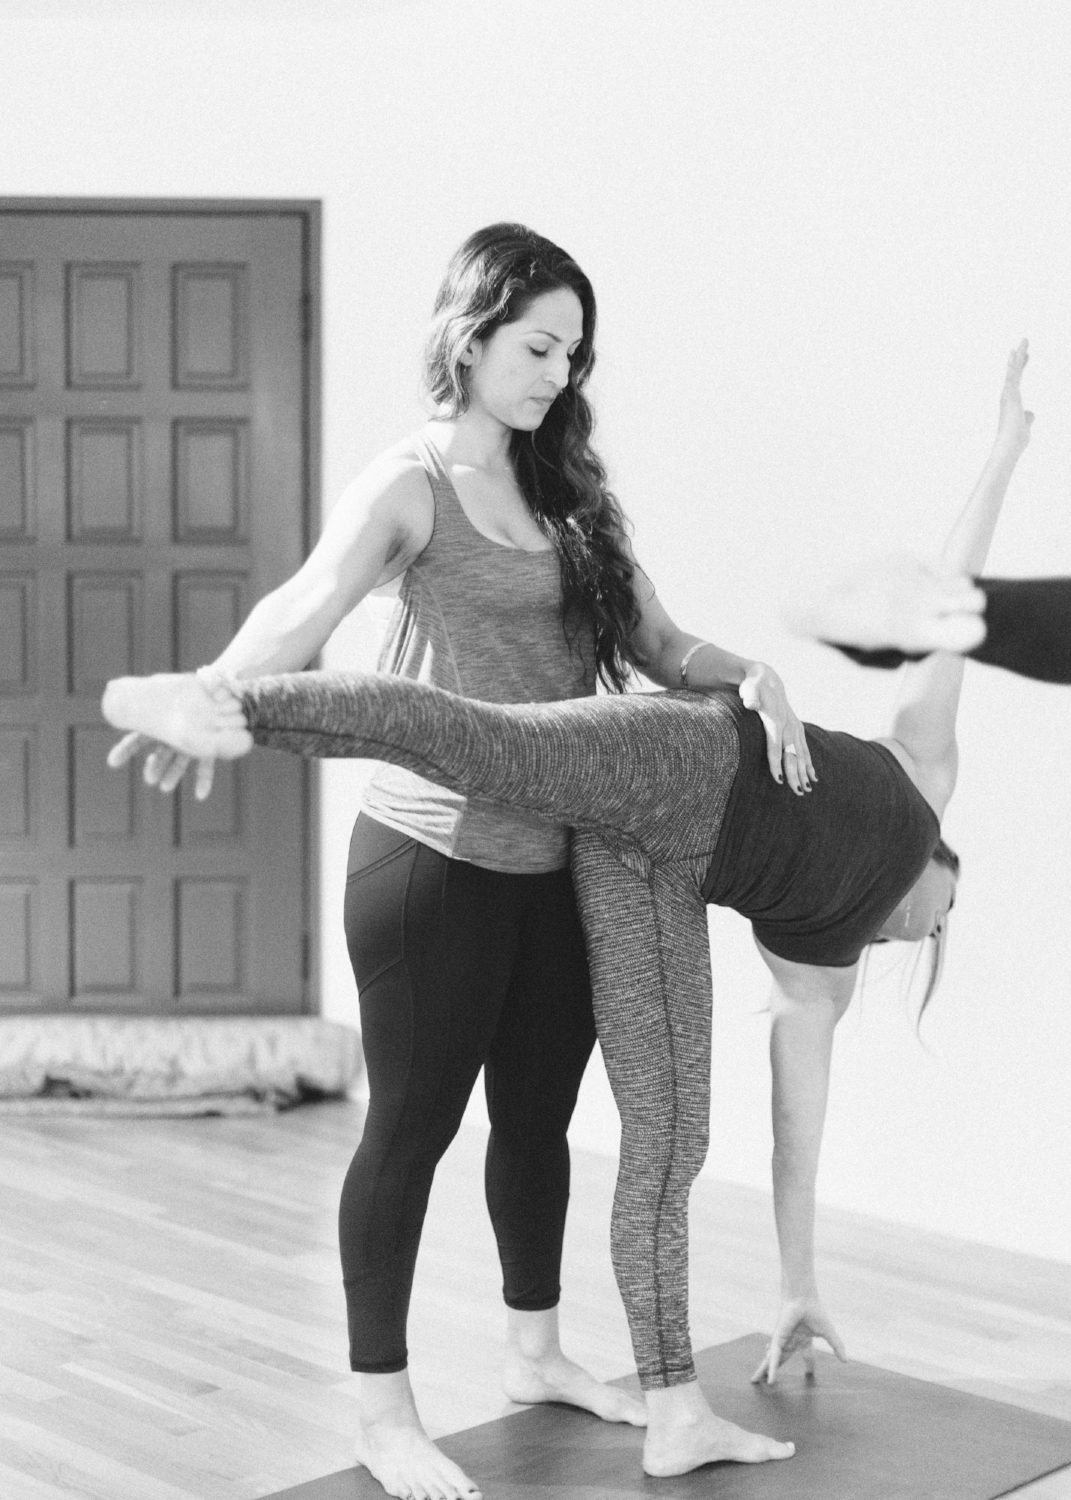 - PROGRAM DATESTBDTUITION:$3,000 (payment plan is available upon request)LOCATION:THE LOFTDowntown Portland